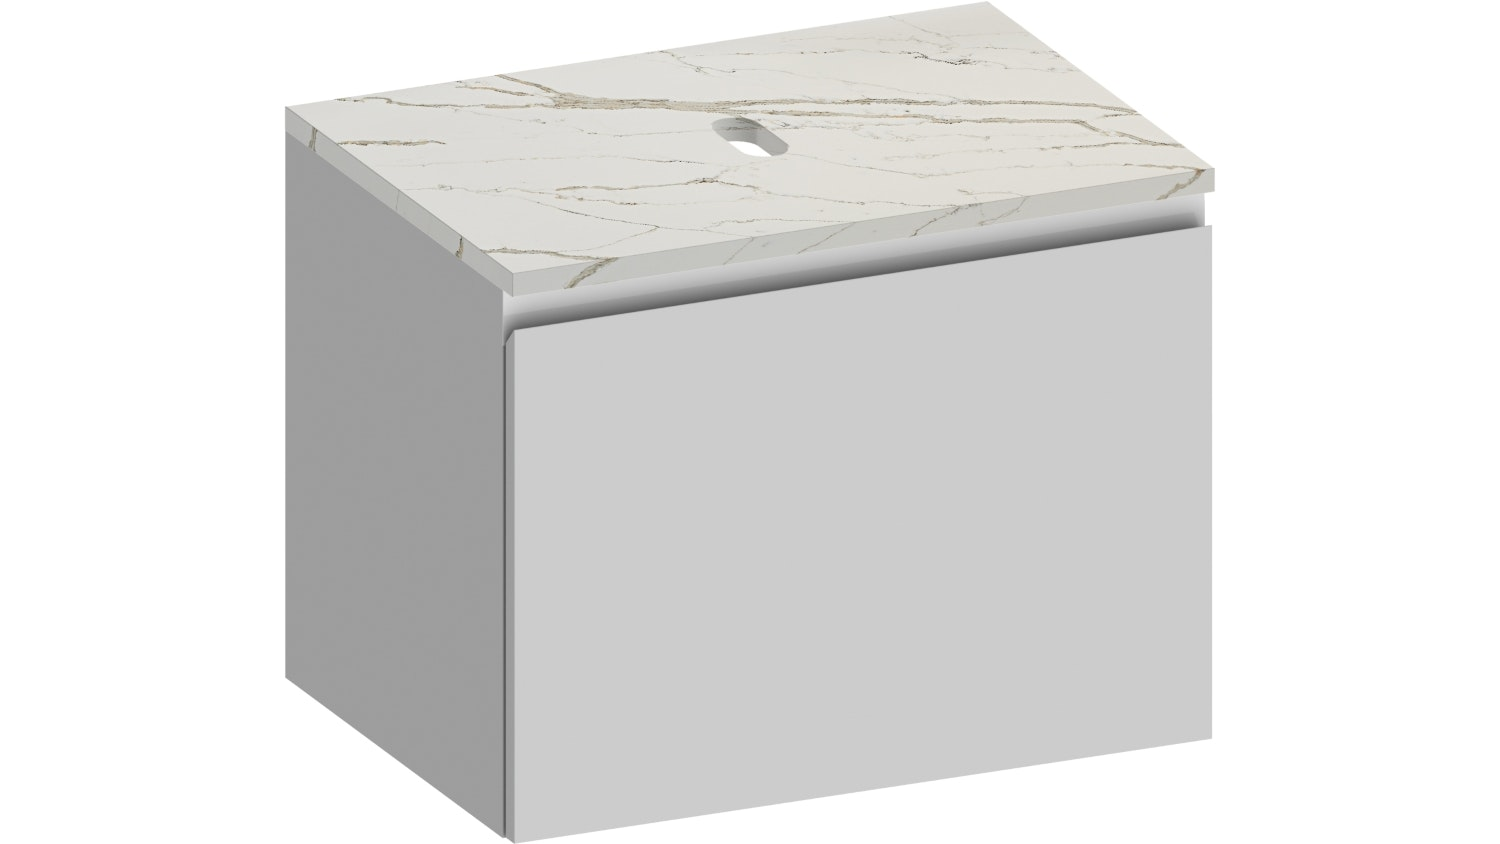 Kokoon Elements Wall Hung Vanity with Vena D'oro Stone Top - Matte White